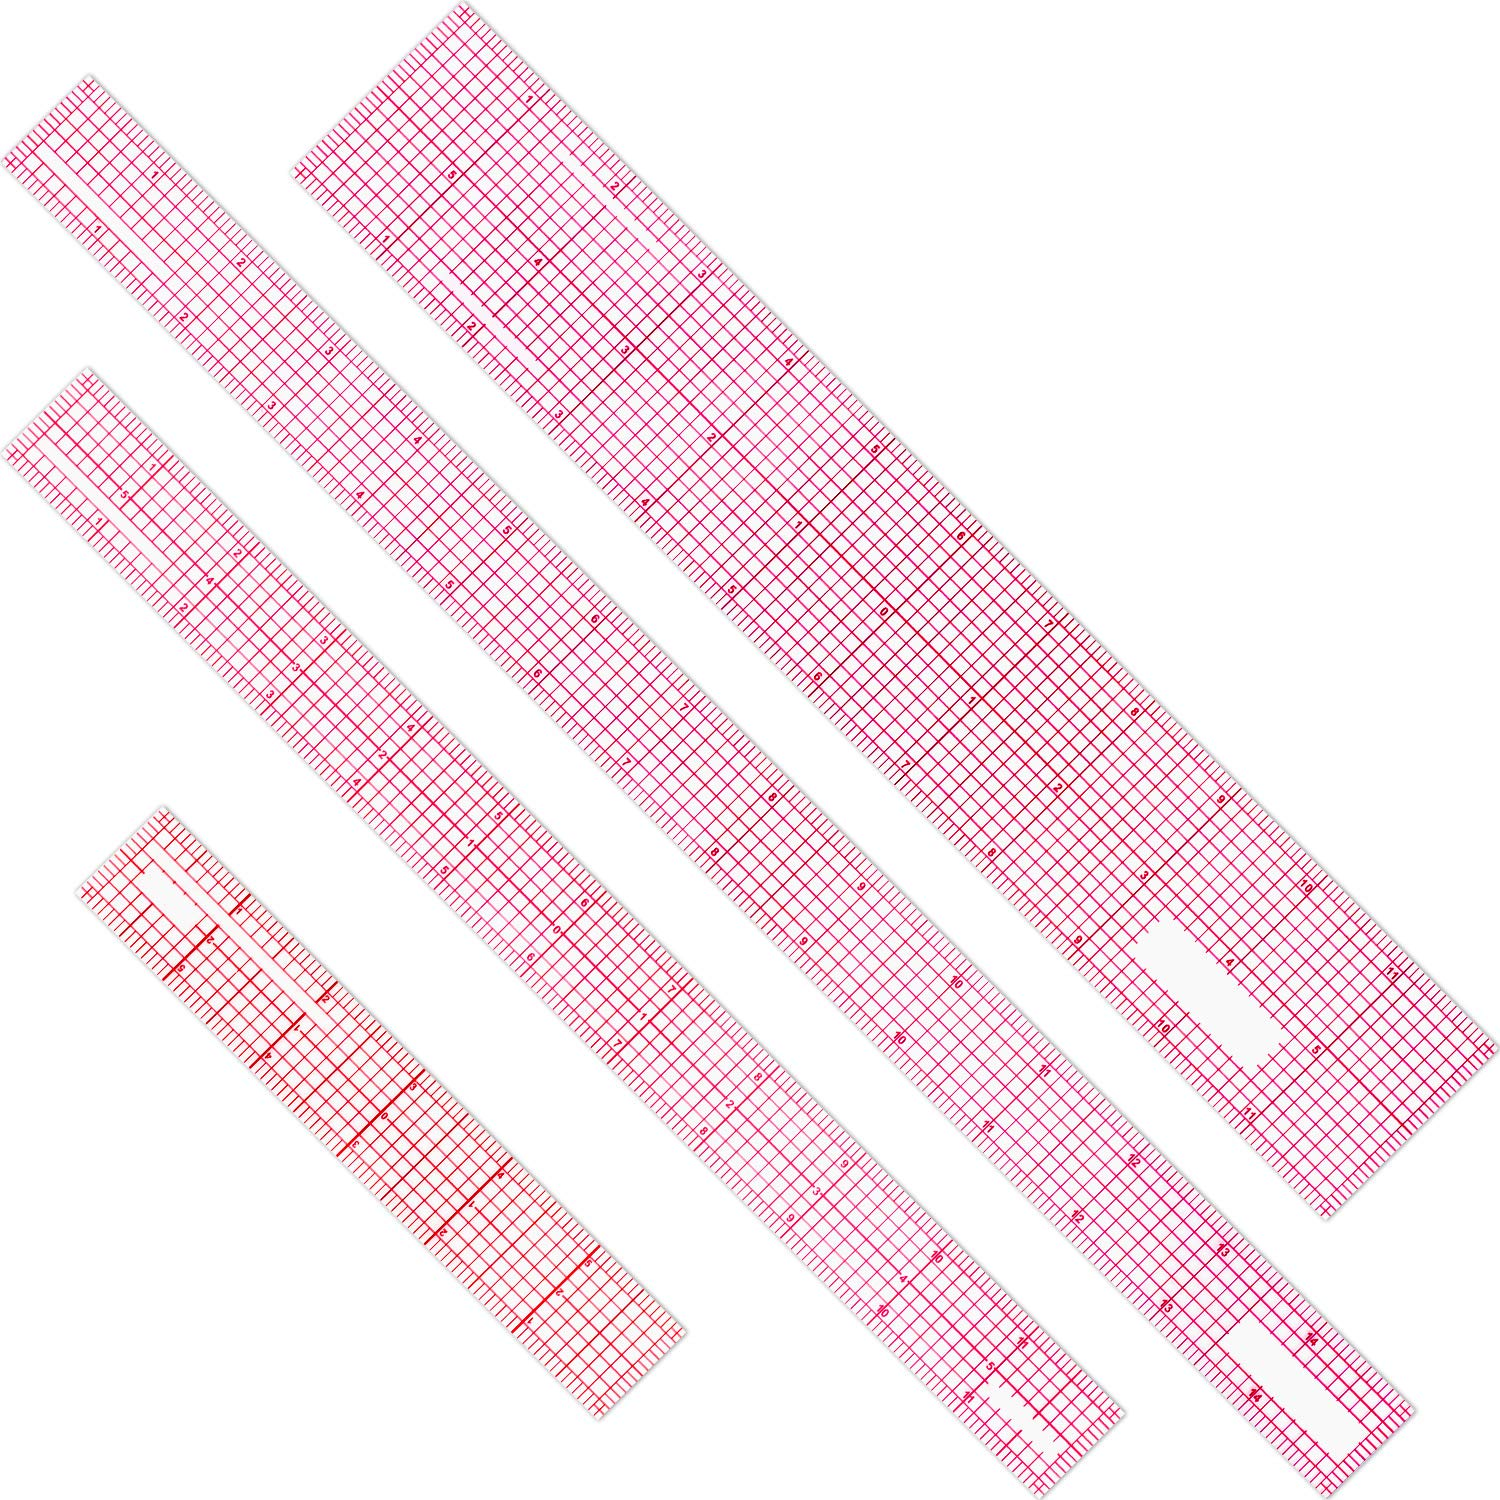 4 Pieces Beveled Transparent Ruler Clear Ruler French Inch Metric Ruler Plastic Measuring Tool Ruler Set for Clothes Design, 6 Inch, 12 Inch, 15 Inch by Pelopy